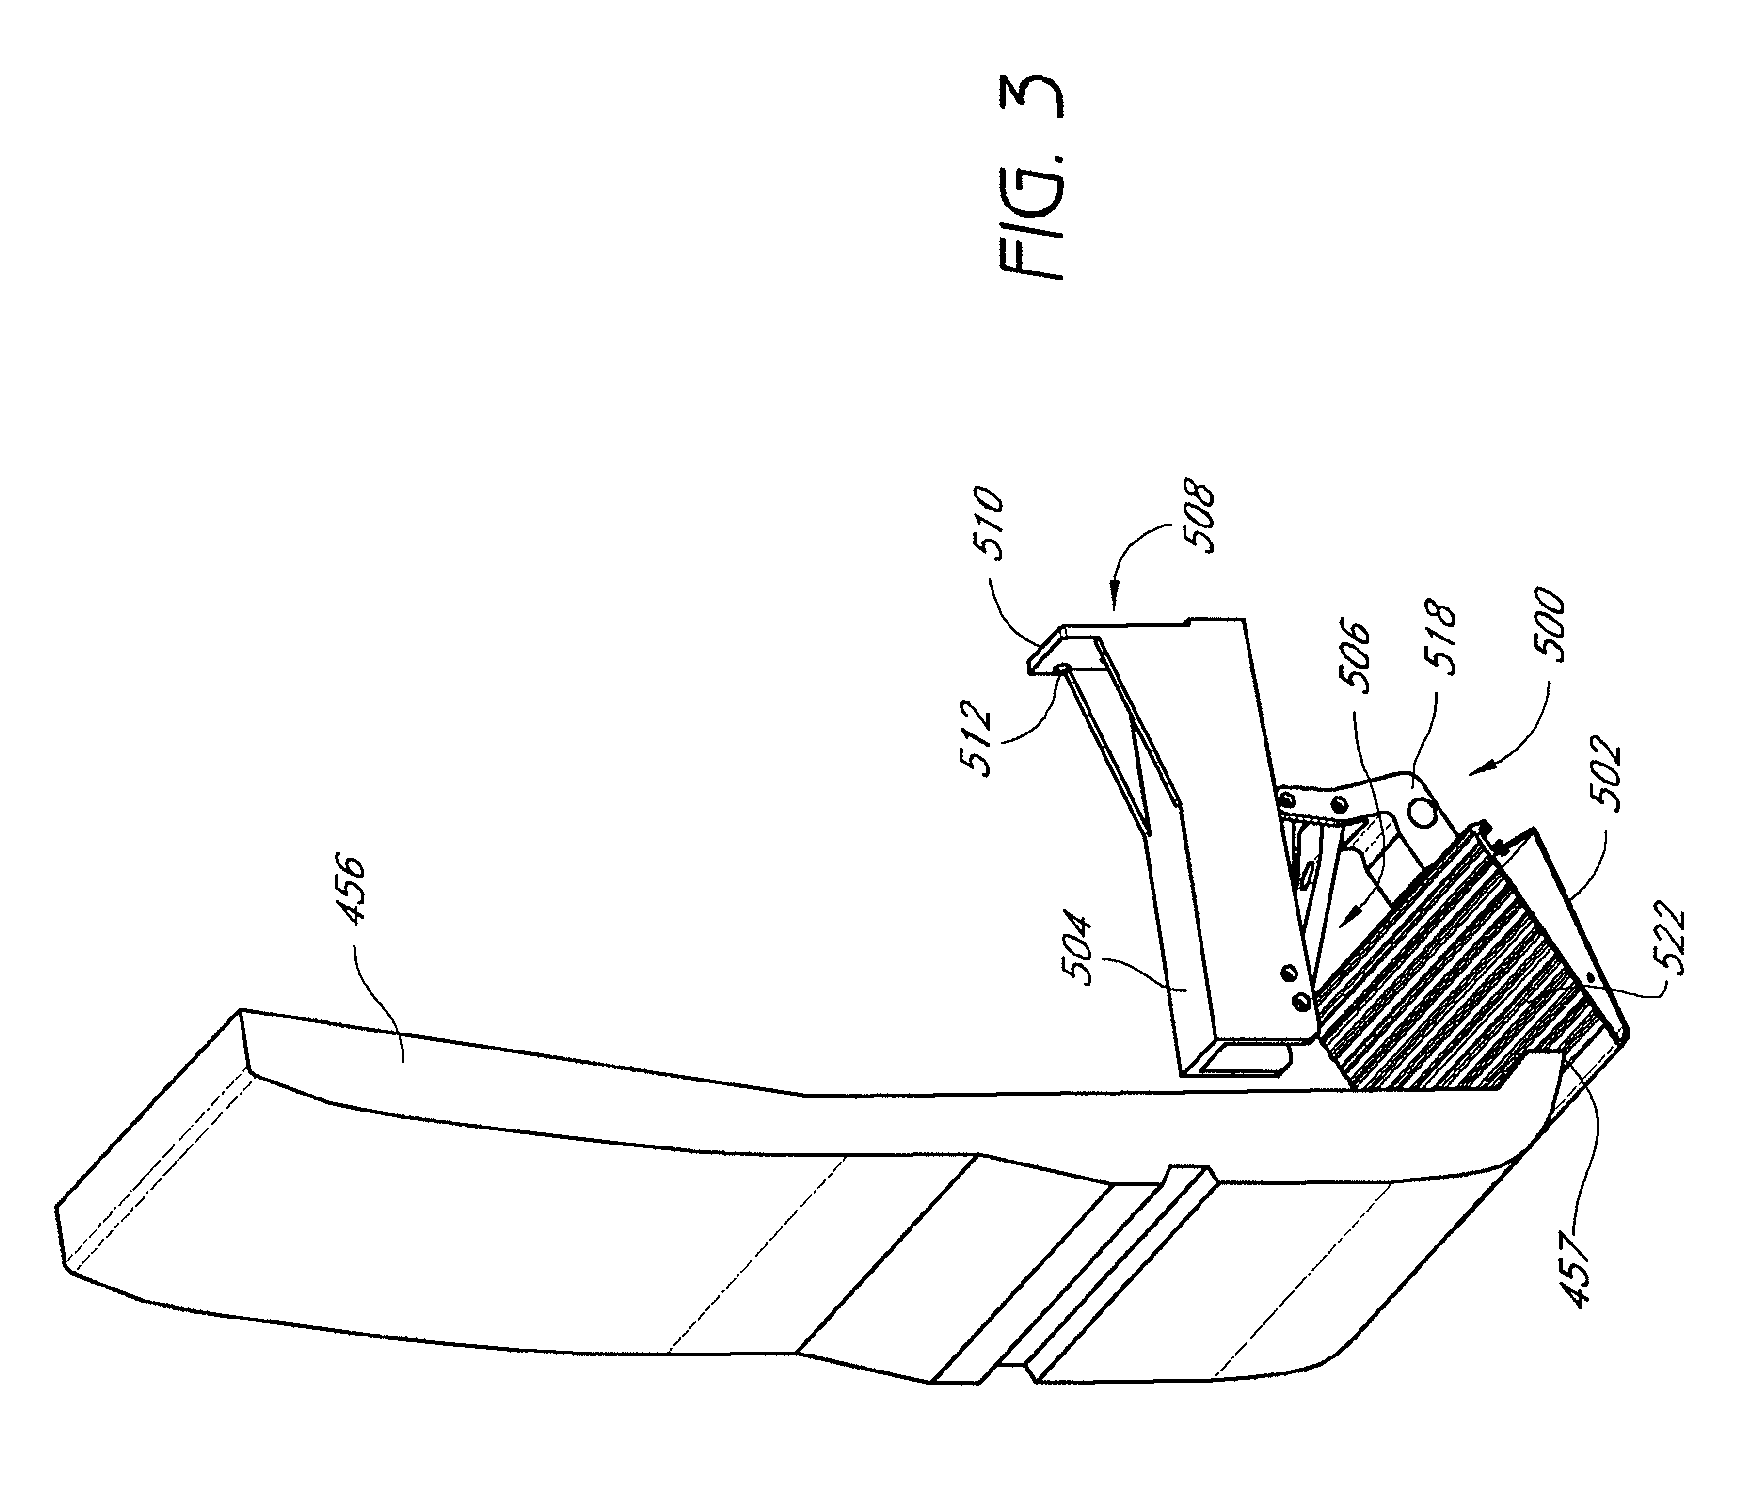 patent us8419034 moveable support platform patents School Bus Auto Car patent drawing